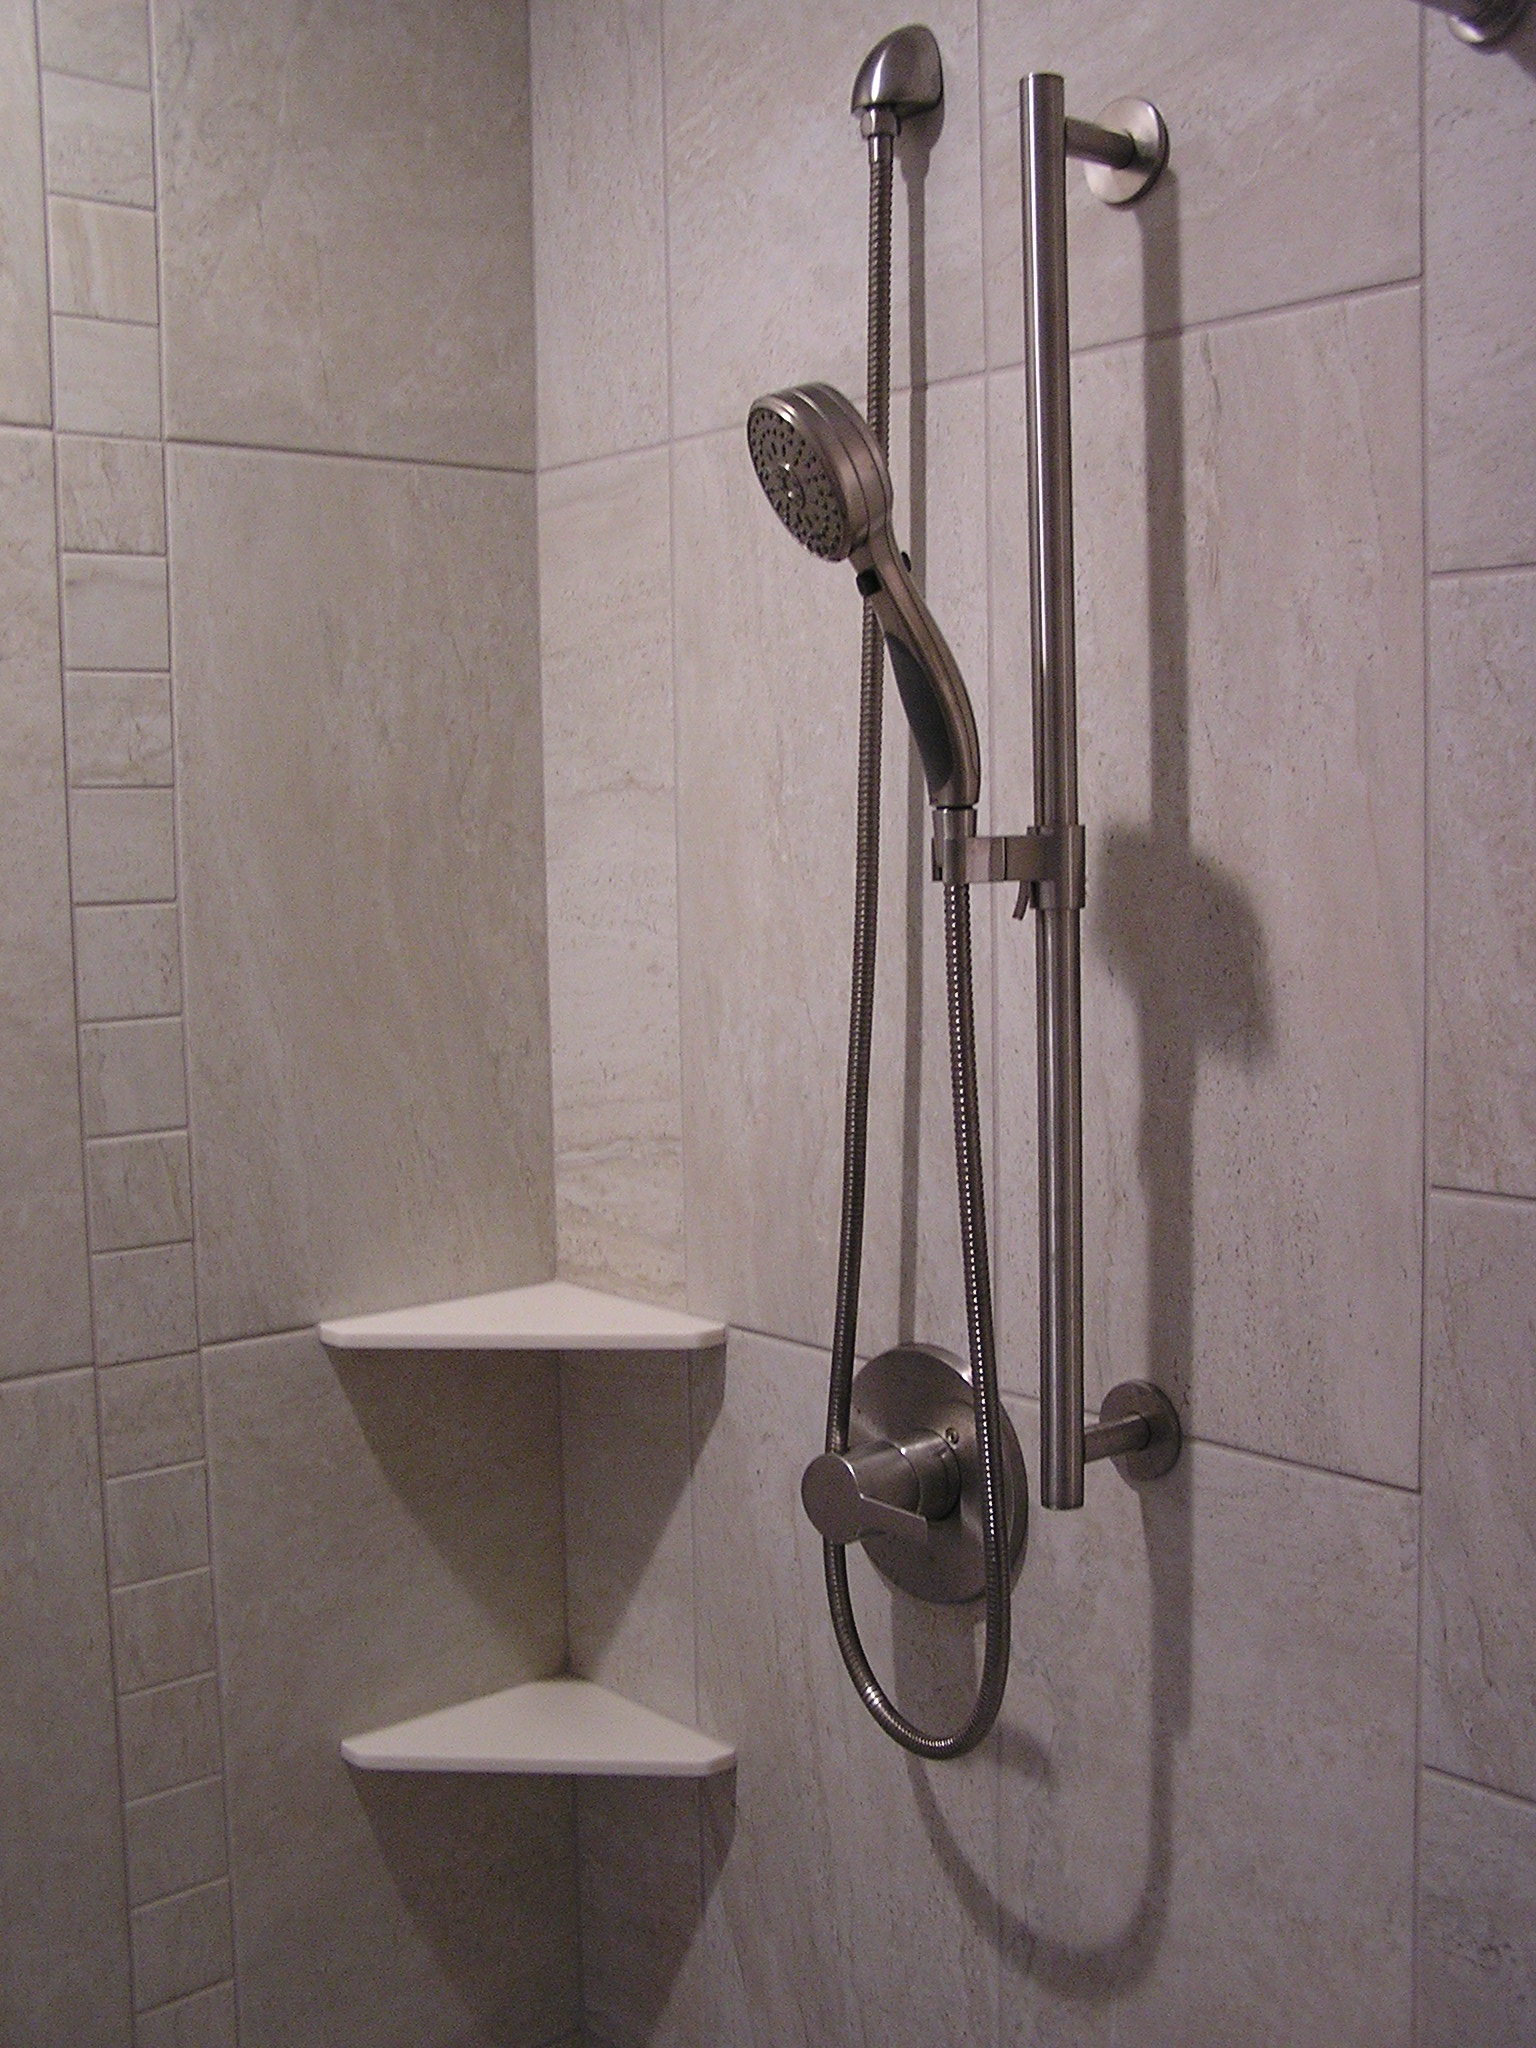 Shower Remodeling done right!